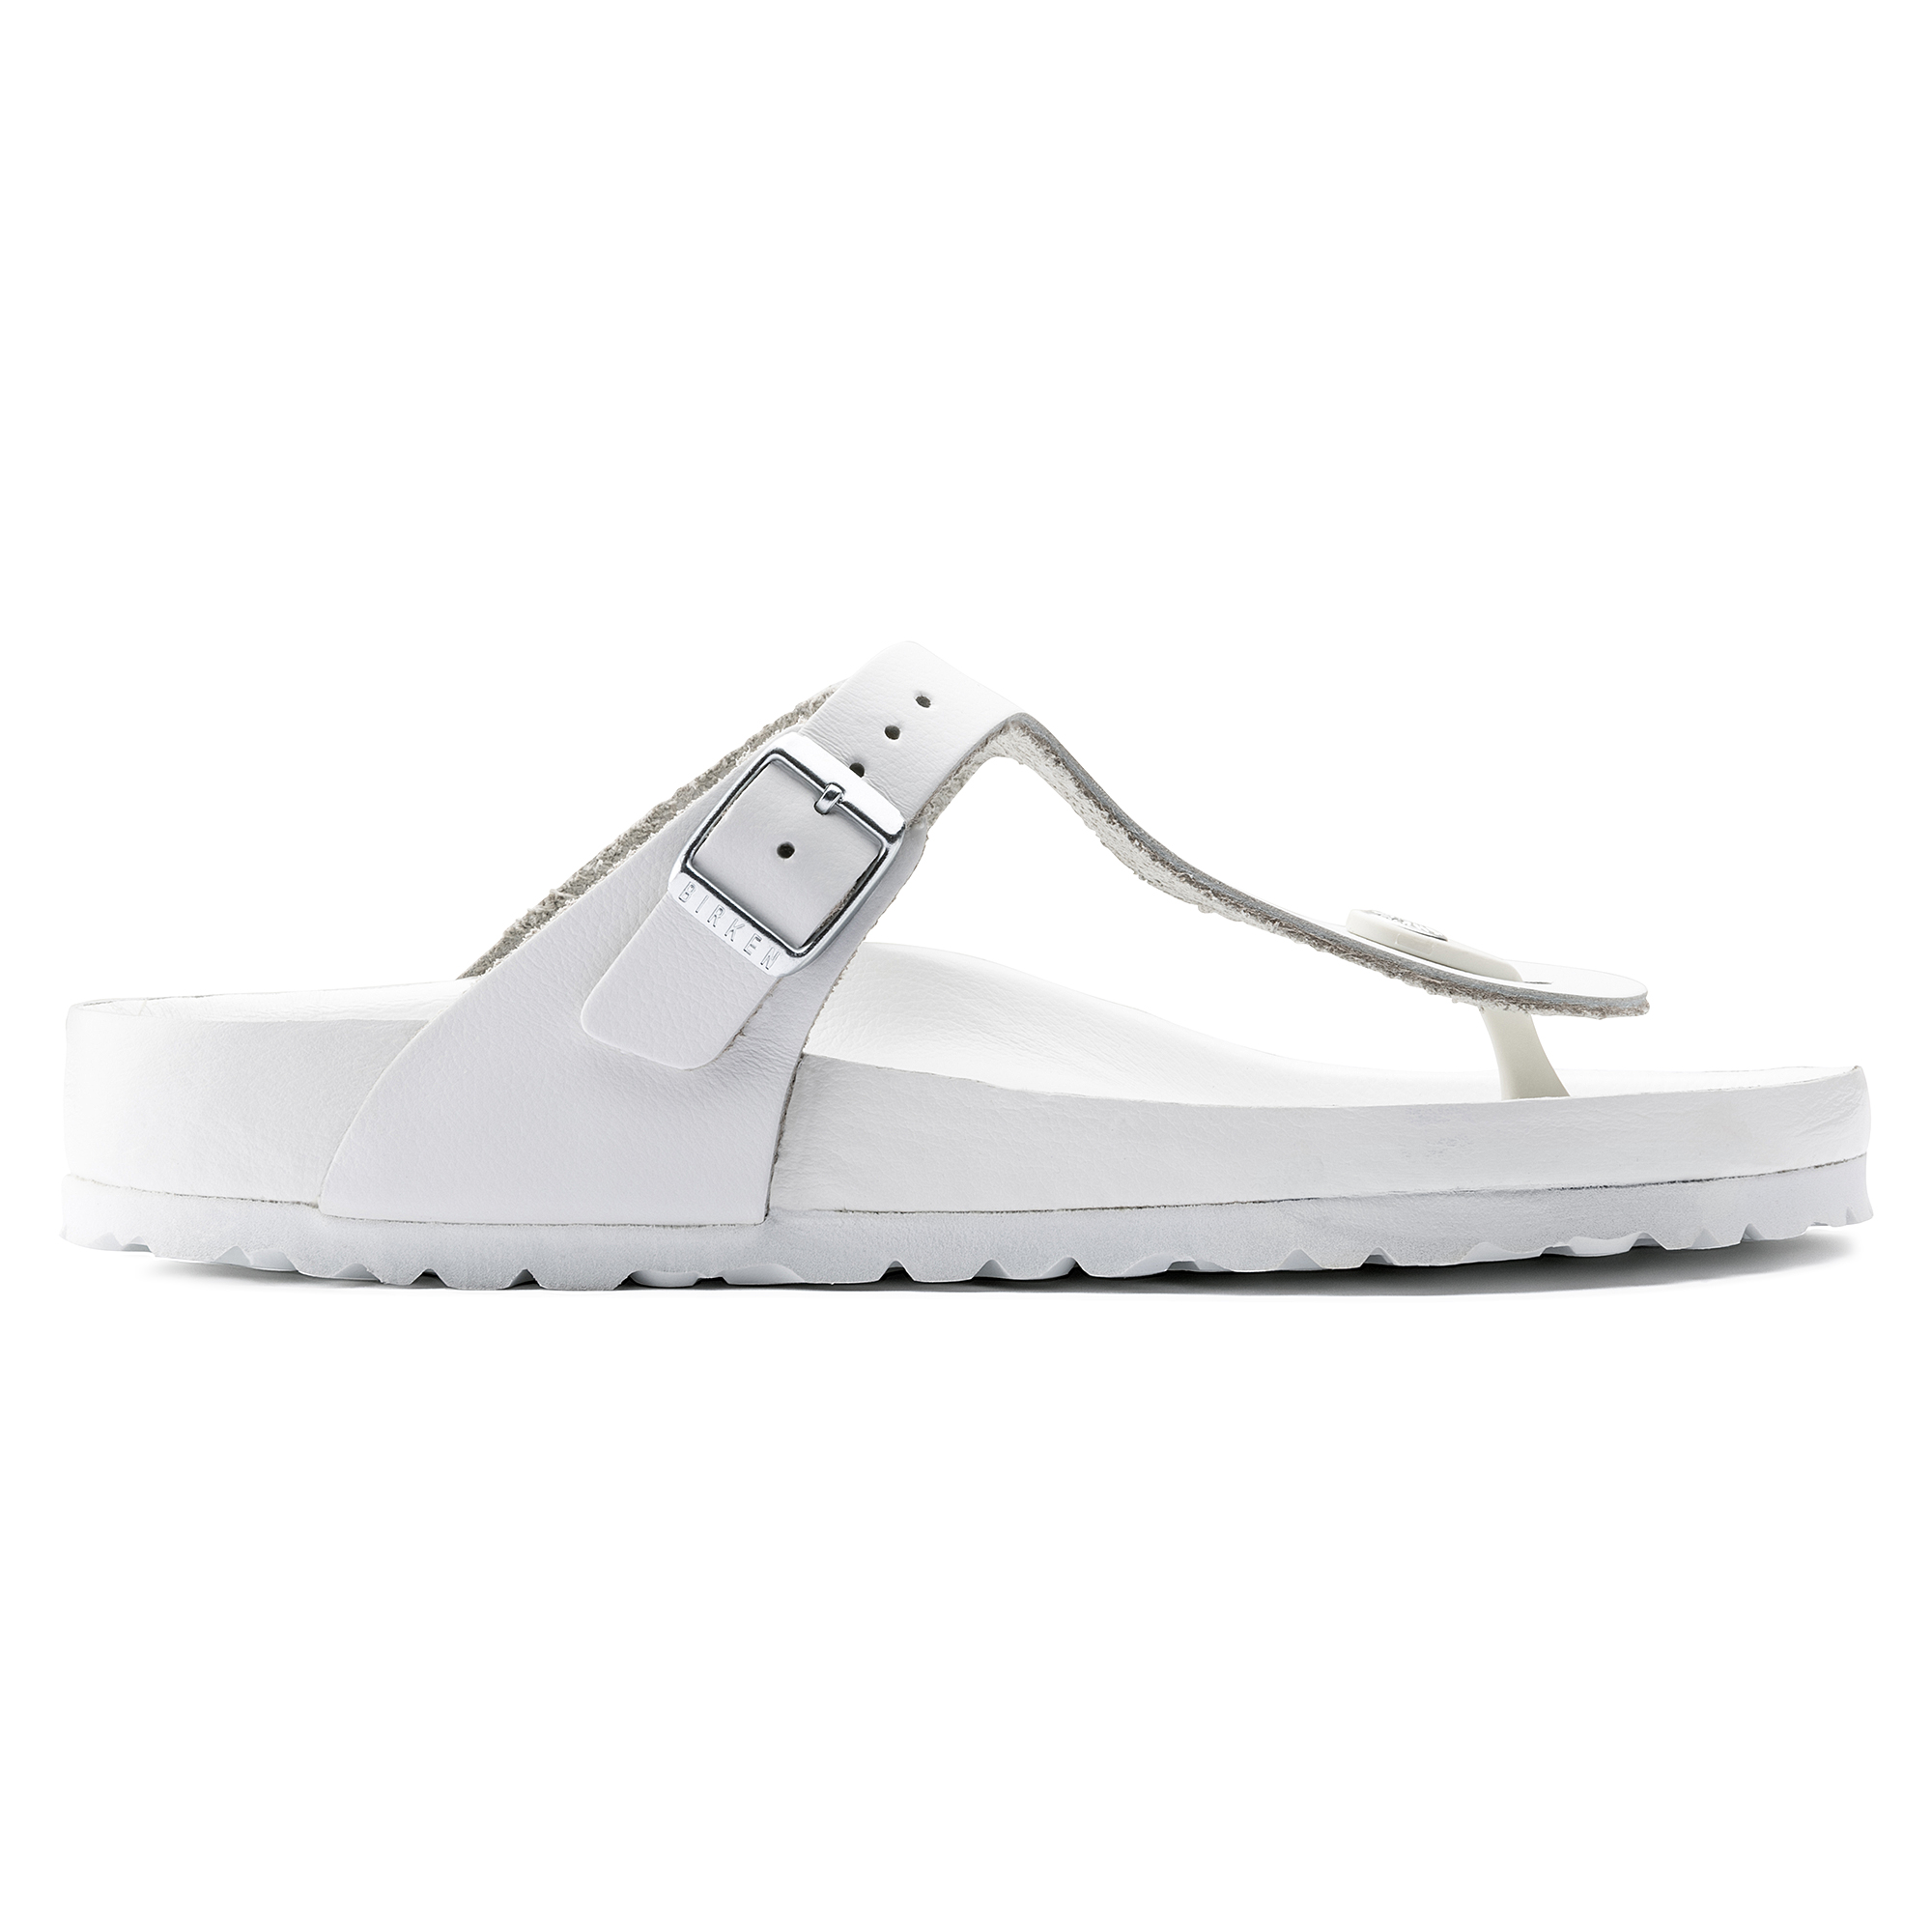 895712d4a76 ... Gizeh Natural Leather White ...